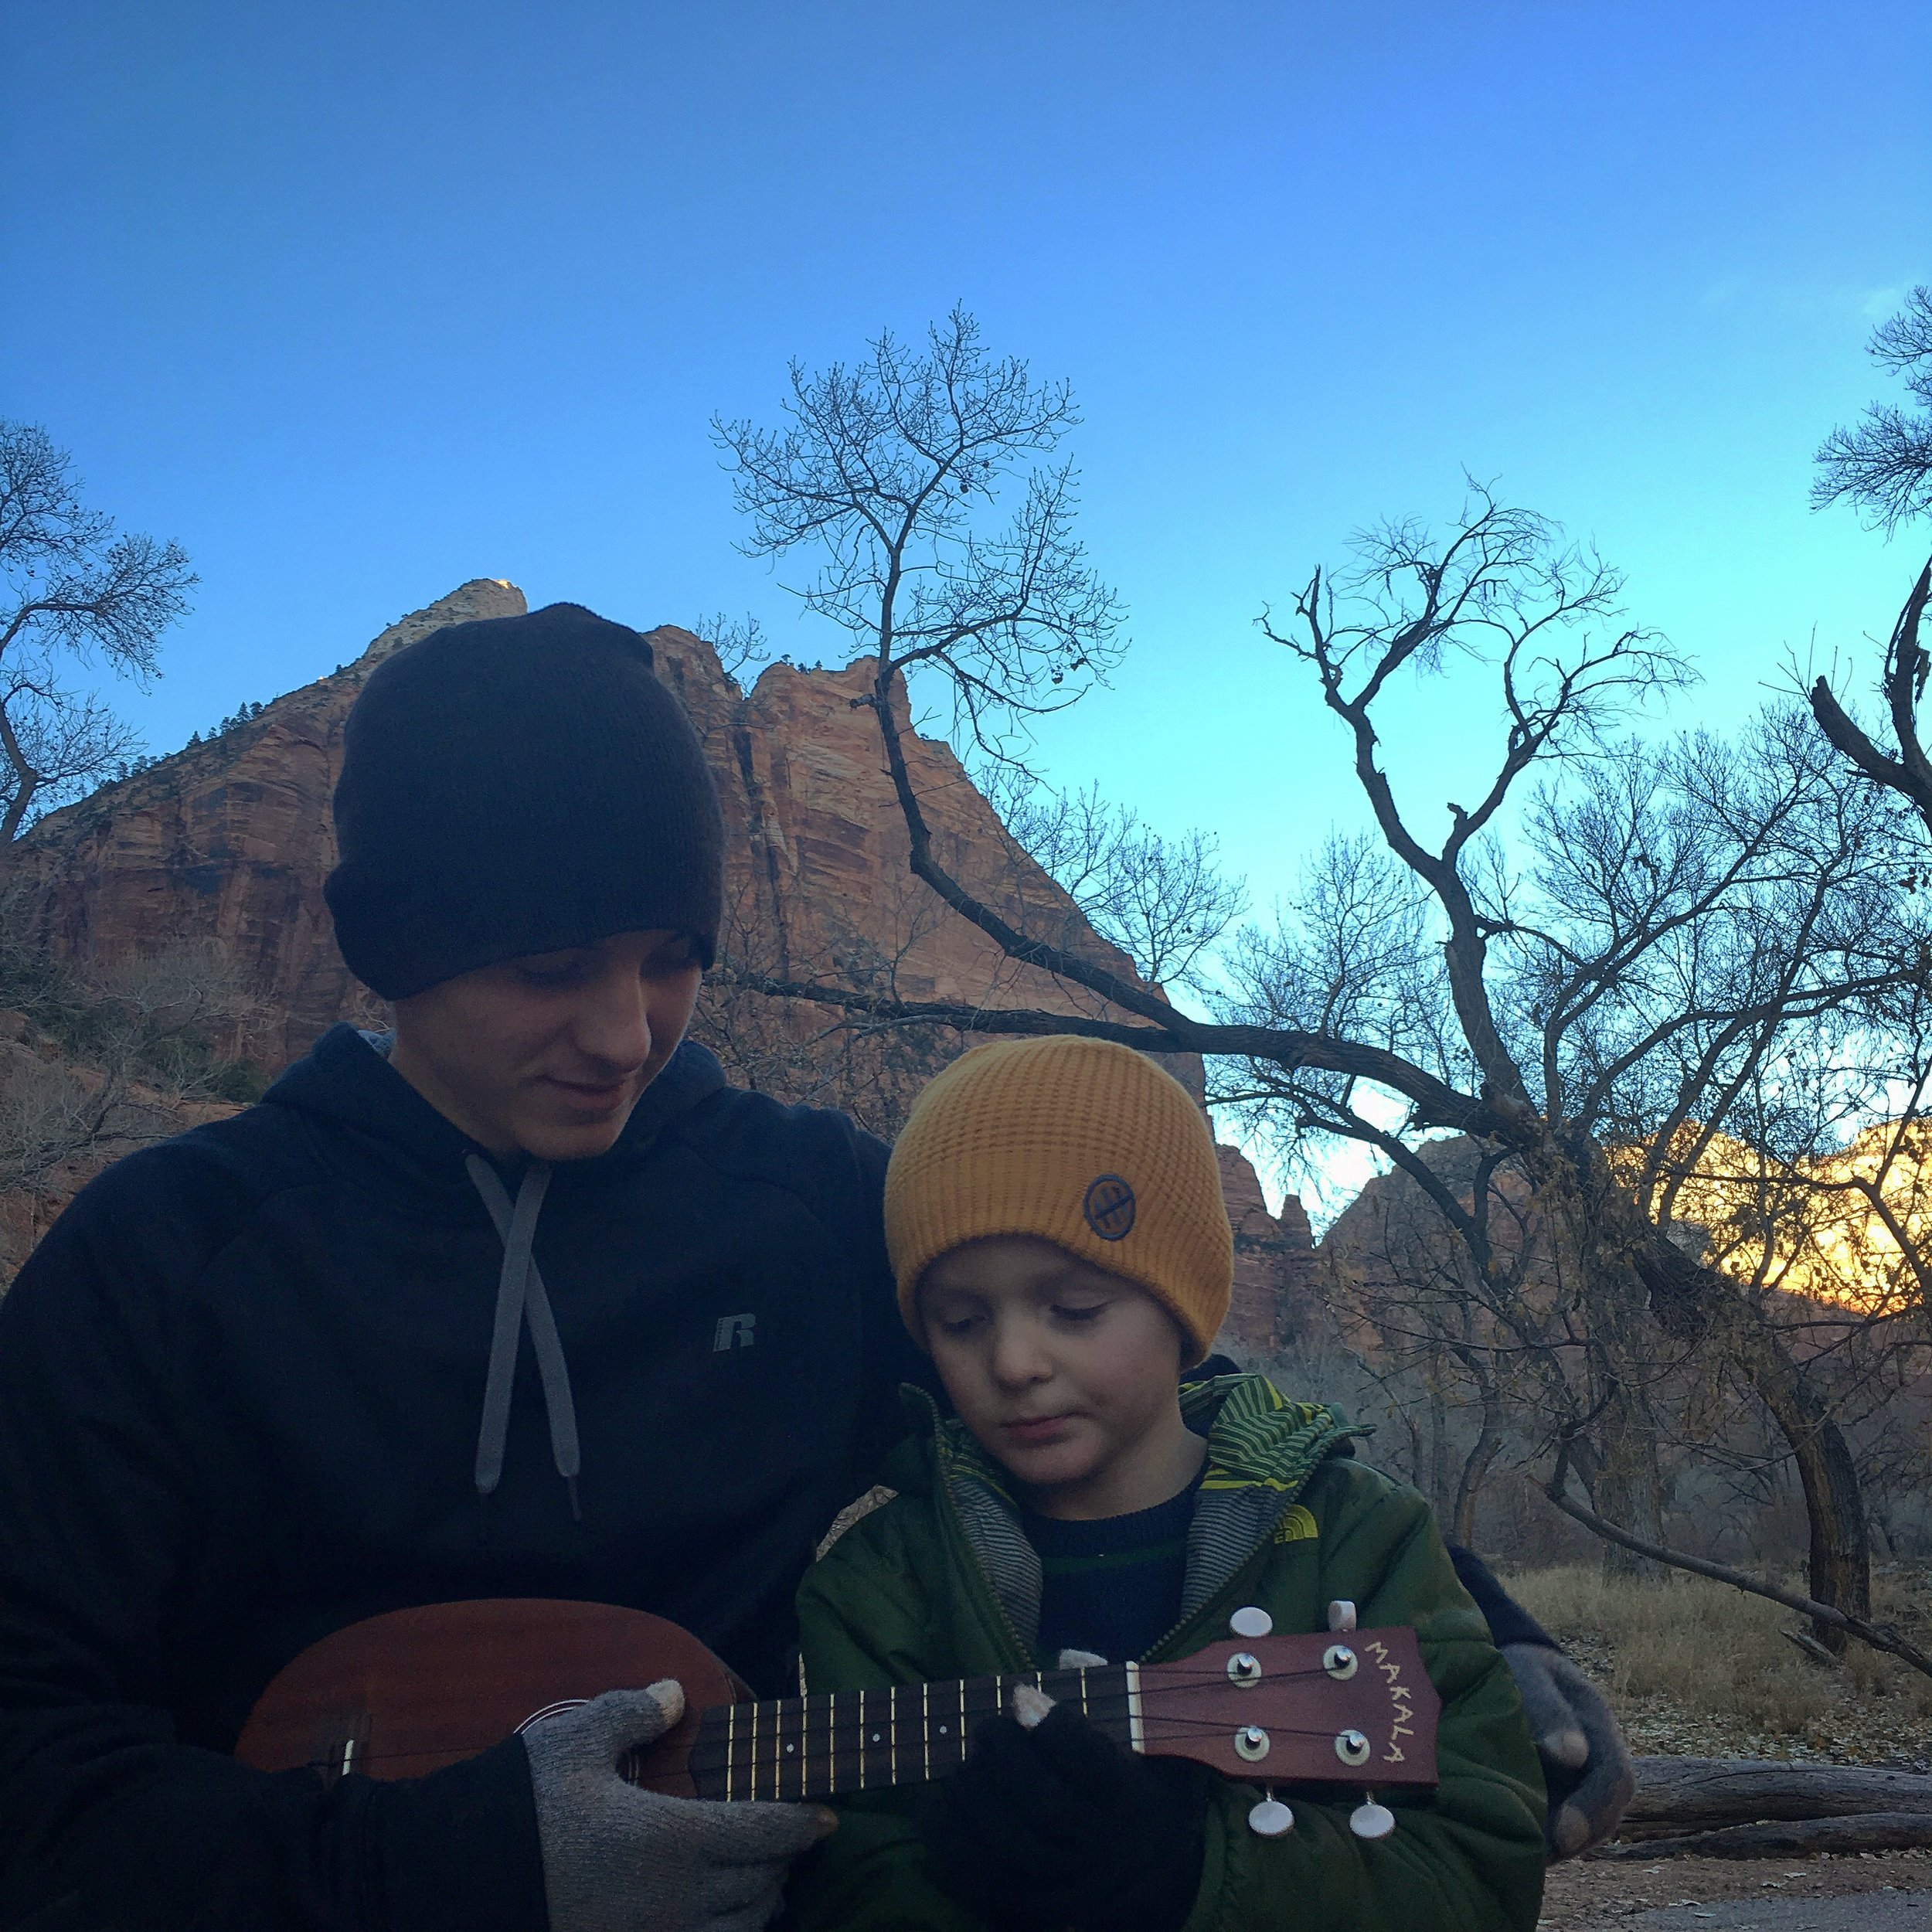 An outdoor - upbringing